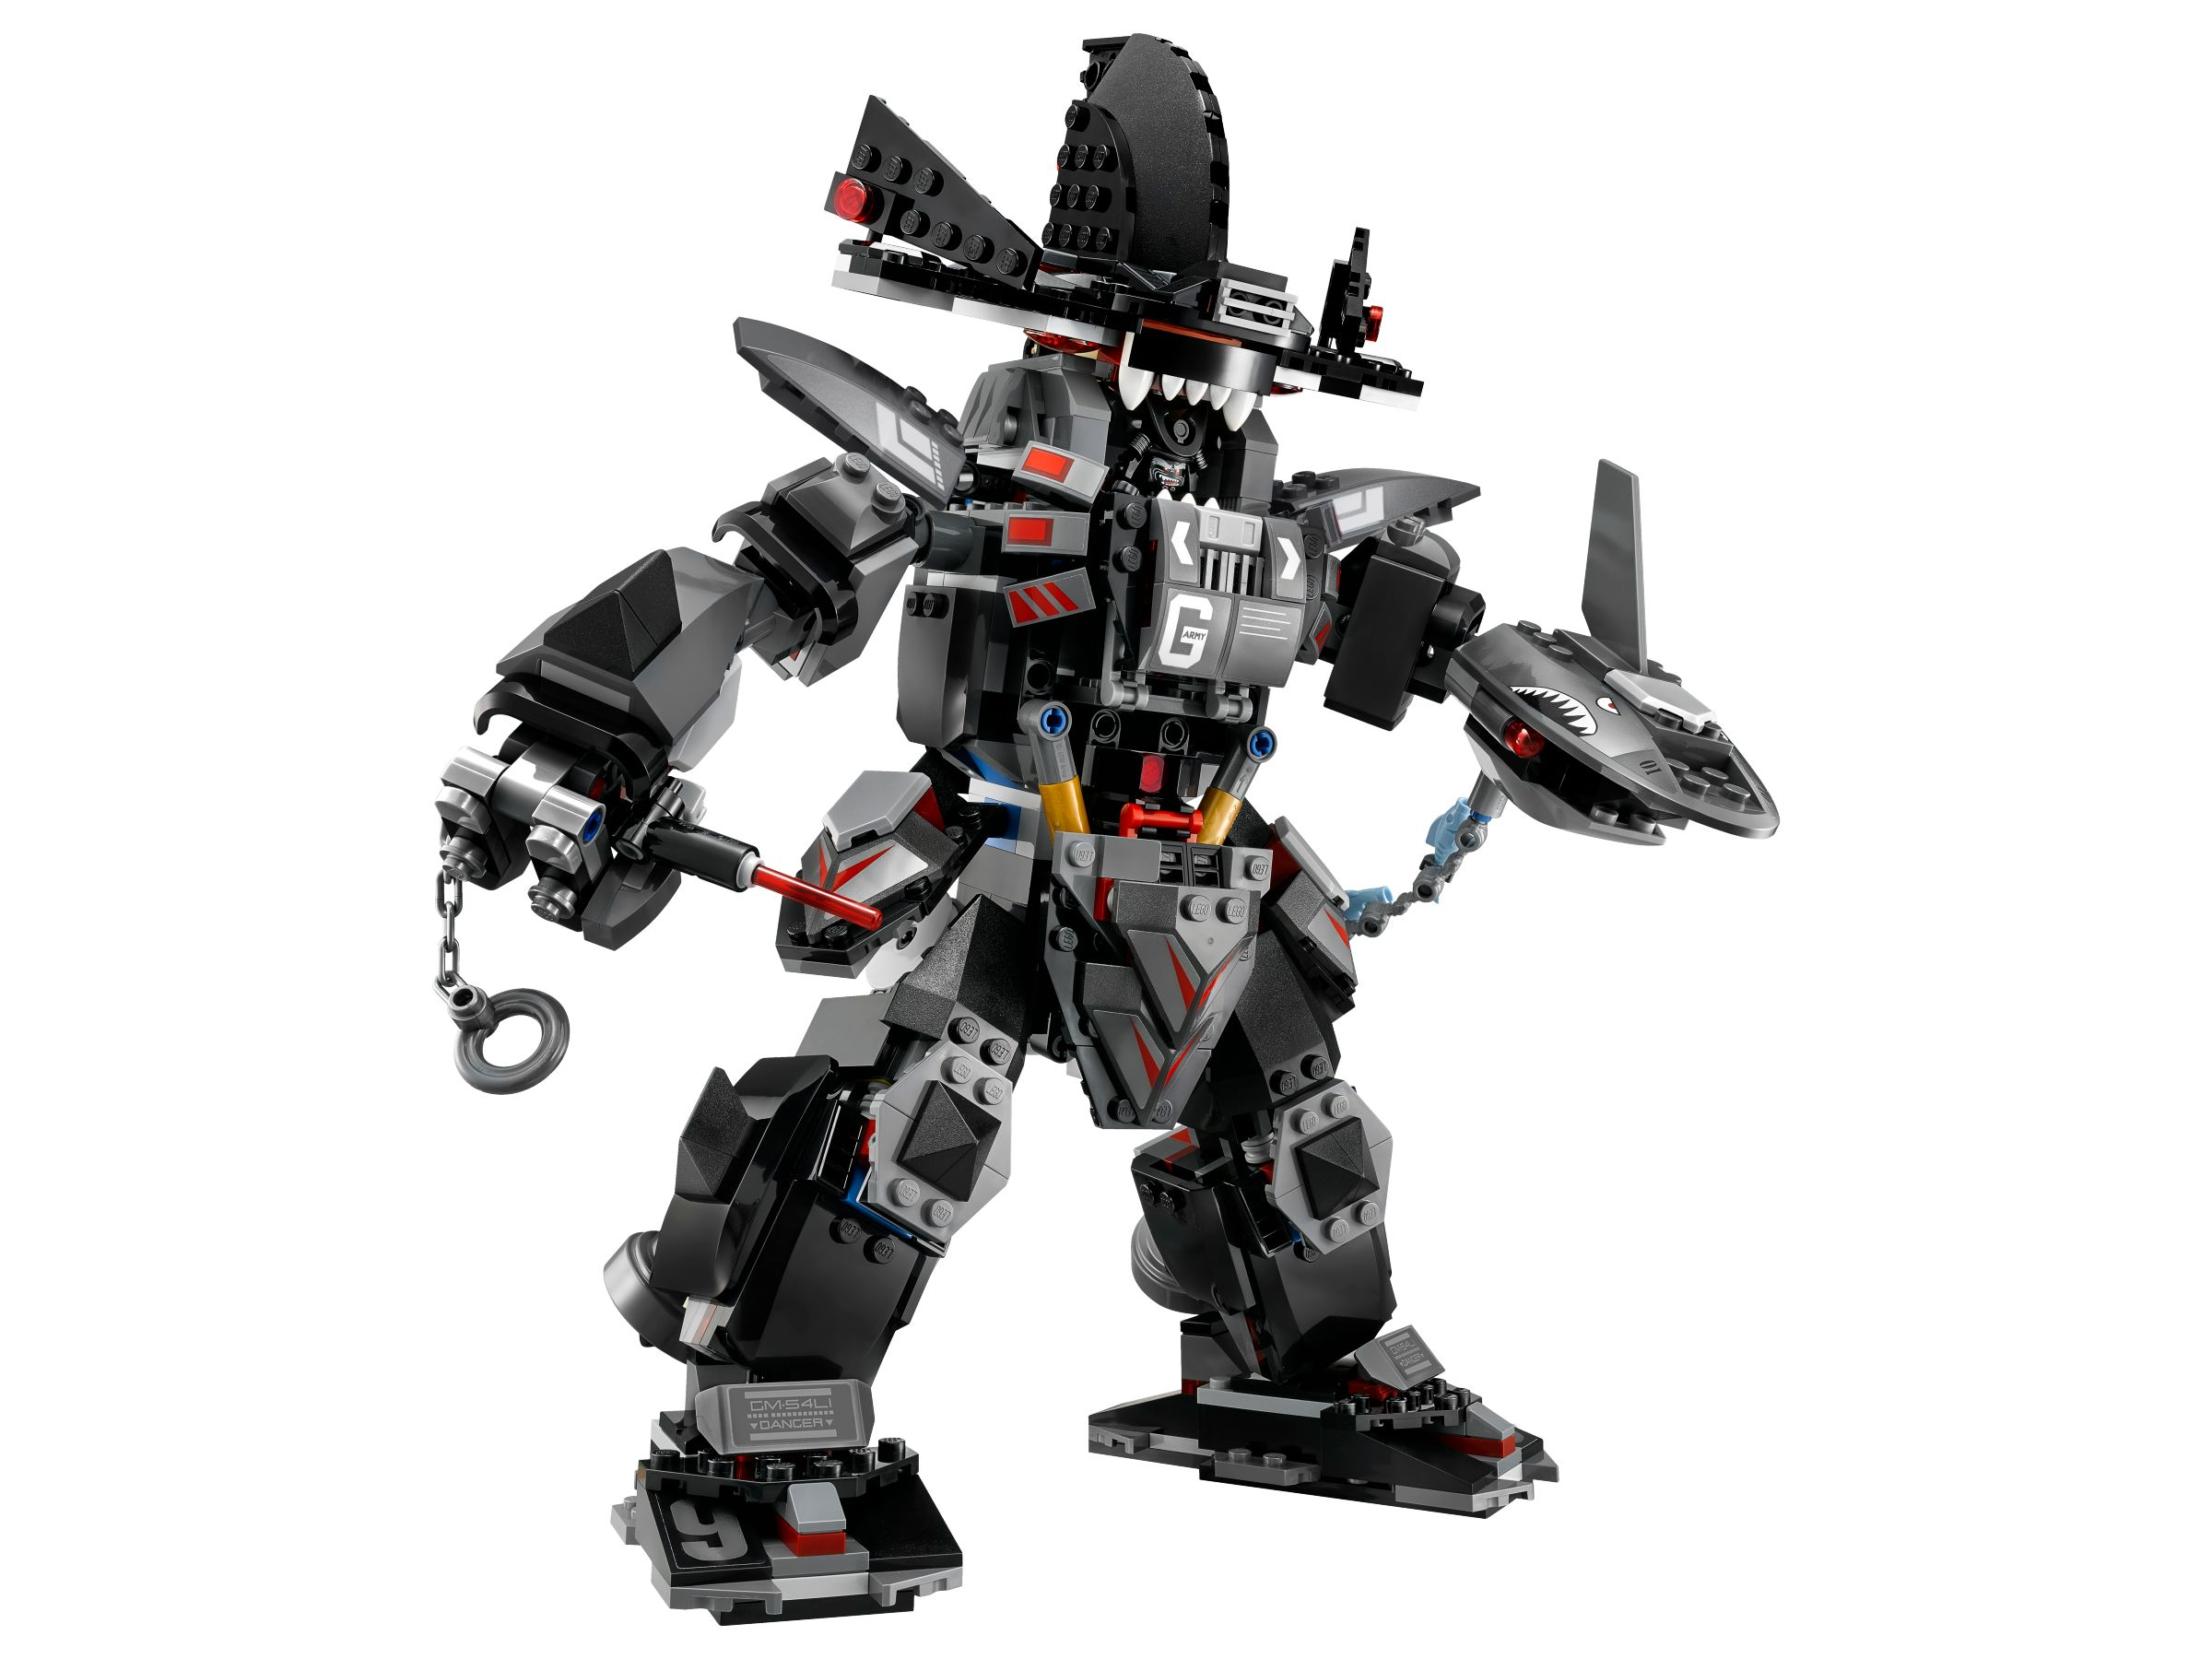 LEGO The LEGO Ninjago Movie 70613 Garmadon's Robo-Hai LEGO_70613_alt2.jpg